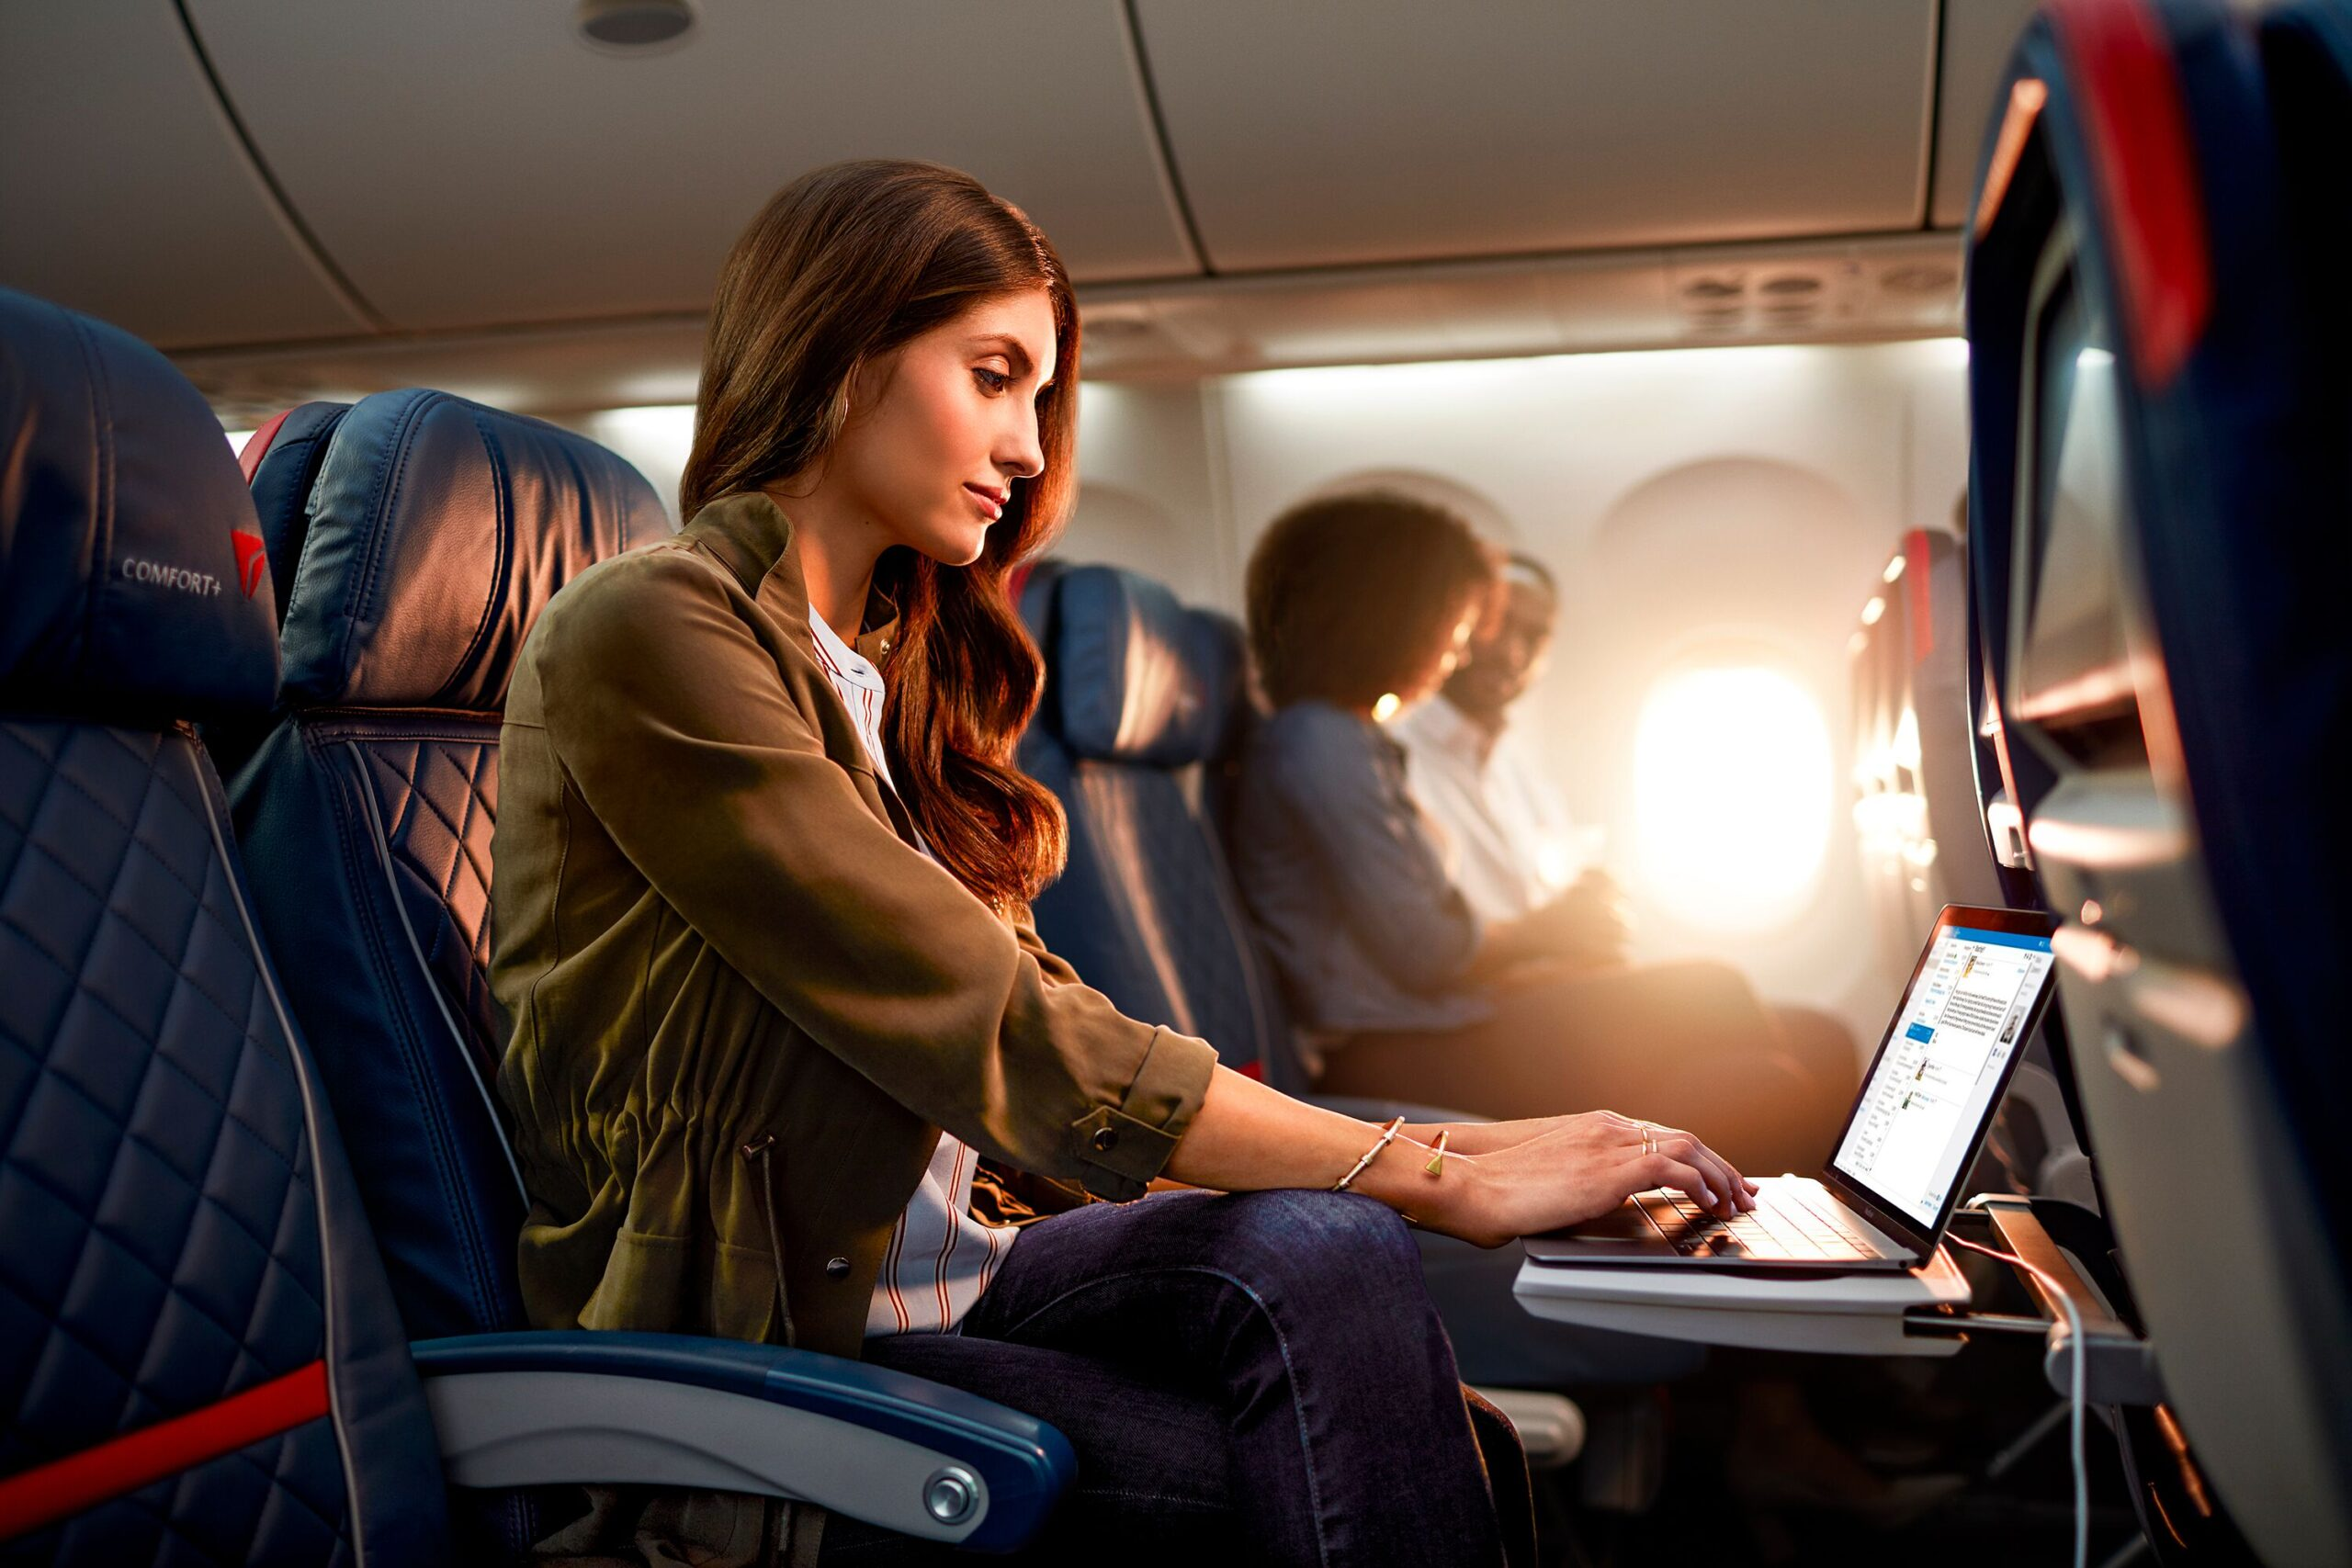 A young woman works on a laptop during her Delta flight as shot by John Fulton